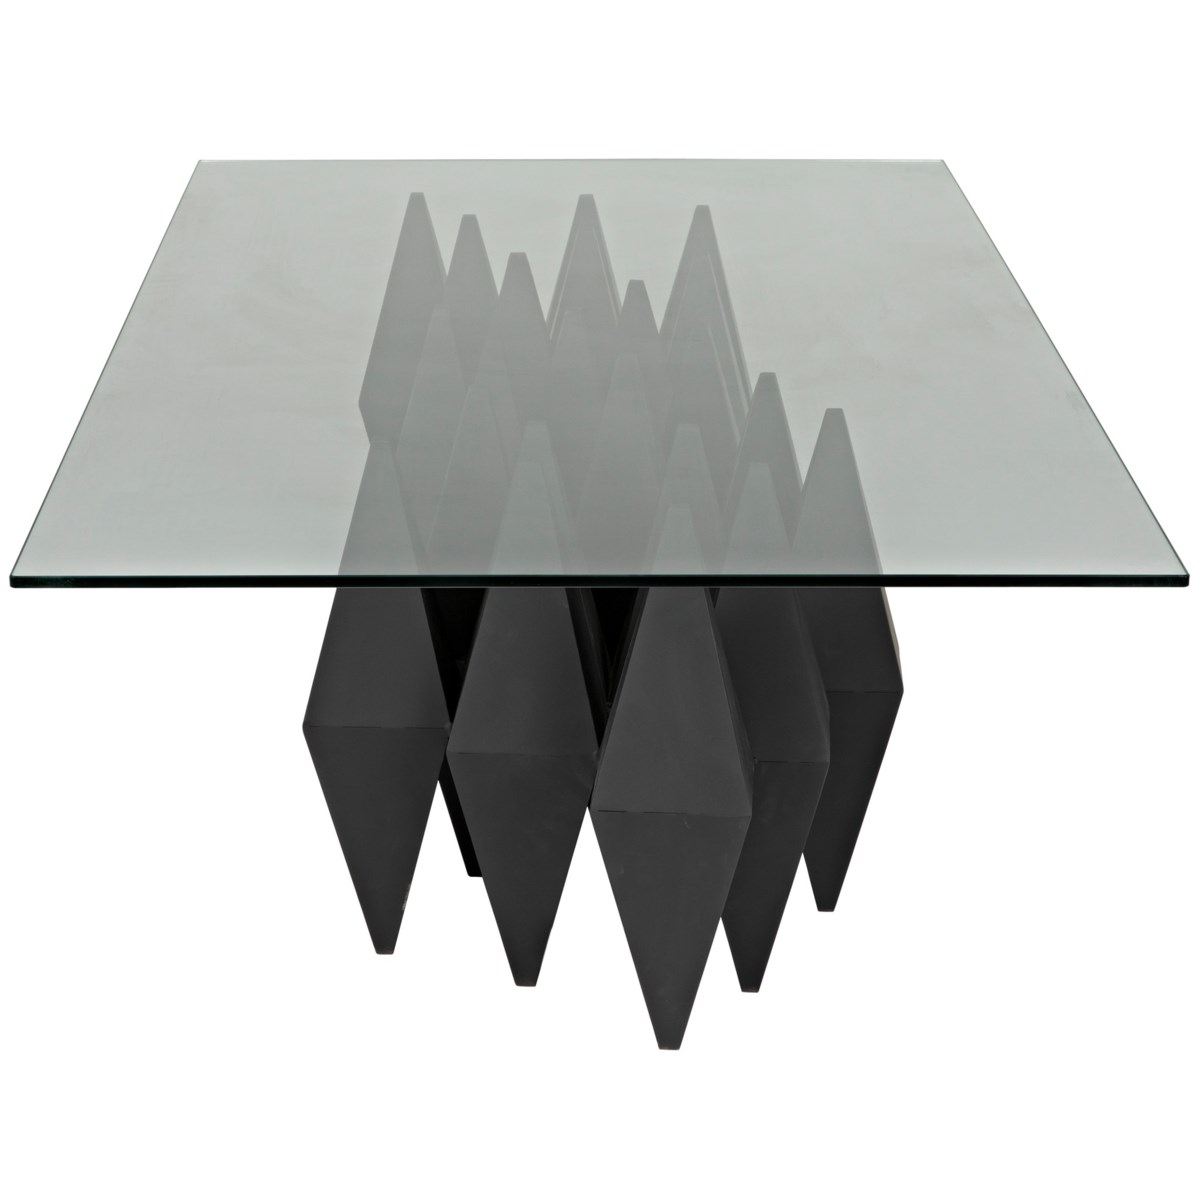 Bast Metal Coffee Table with Glass Top, Black Steel